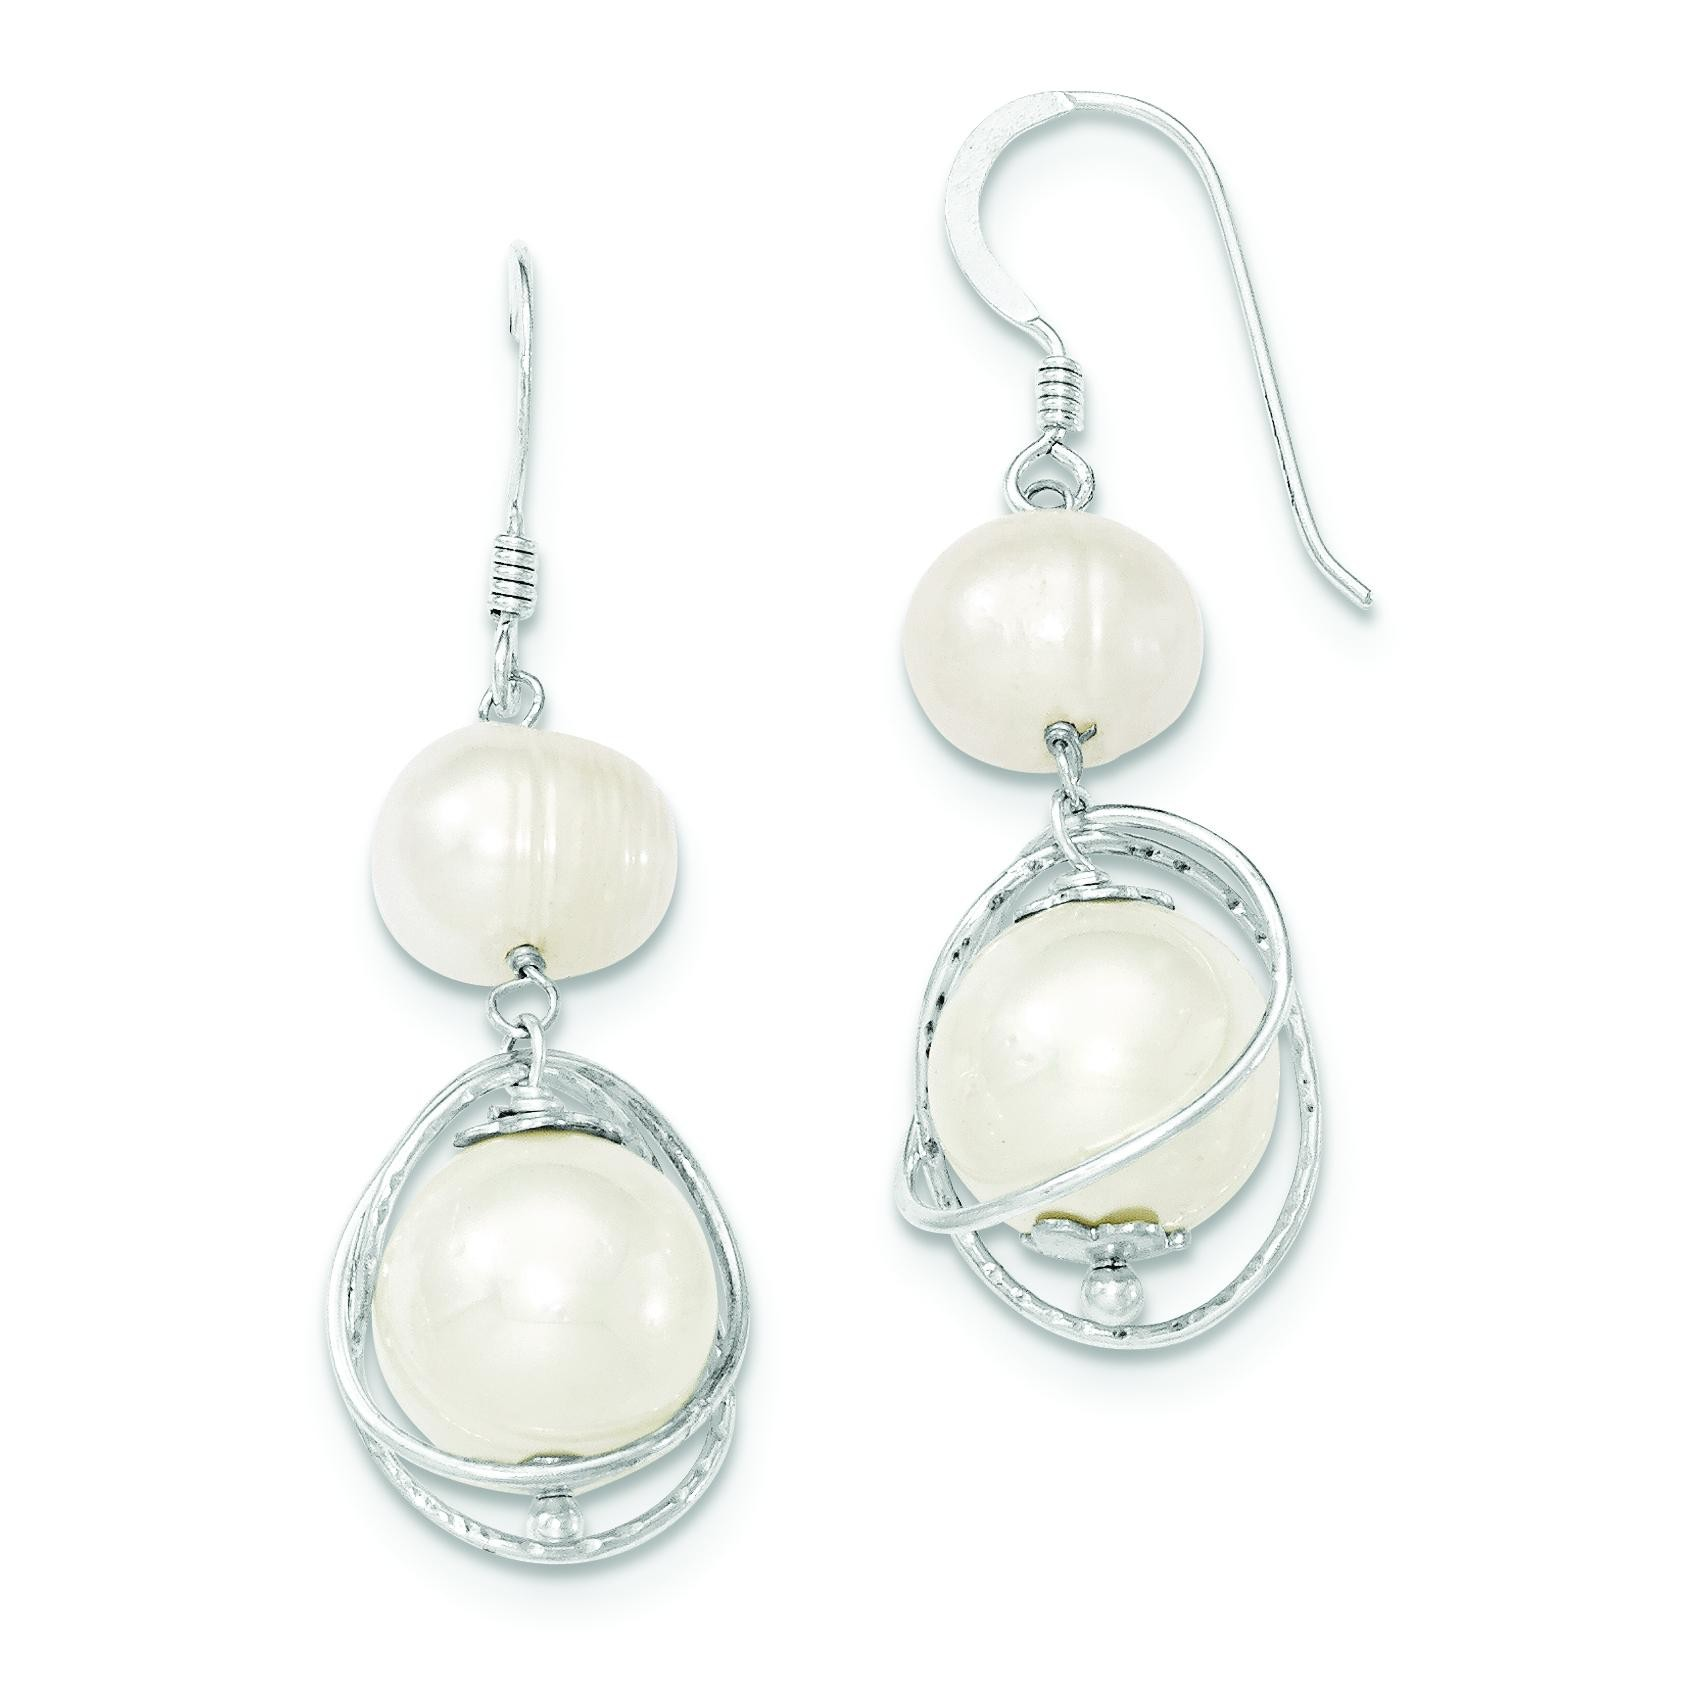 Freshwater Cultured Pearl Earrings in Sterling Silver